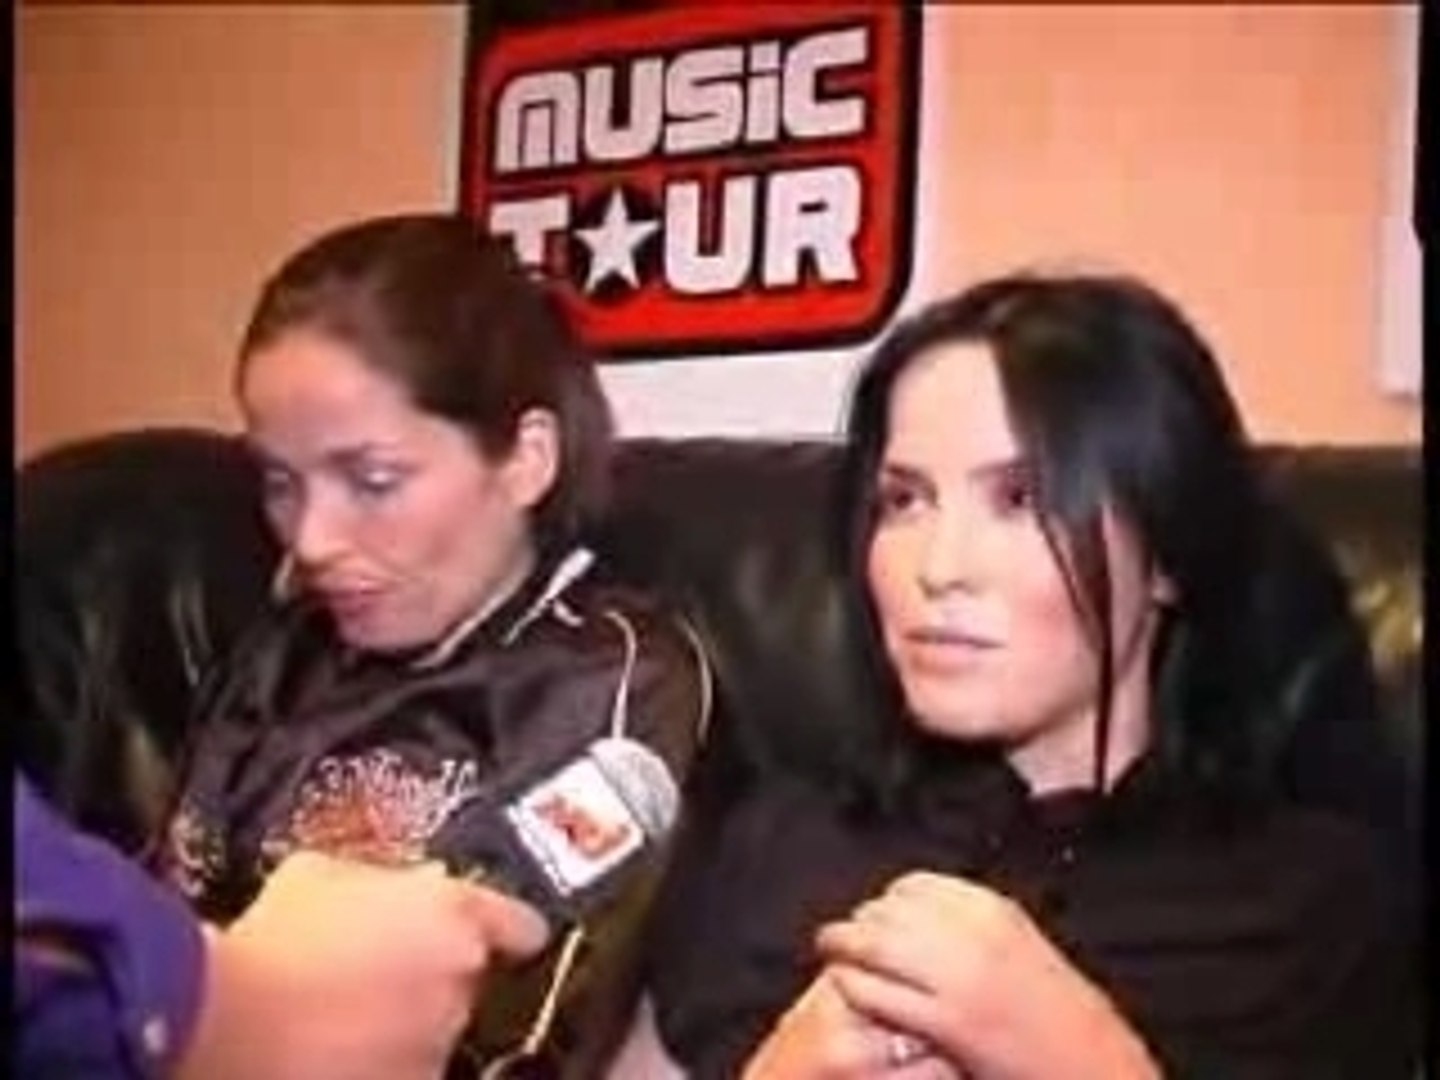 Nrj music tour - interview de The Corrs